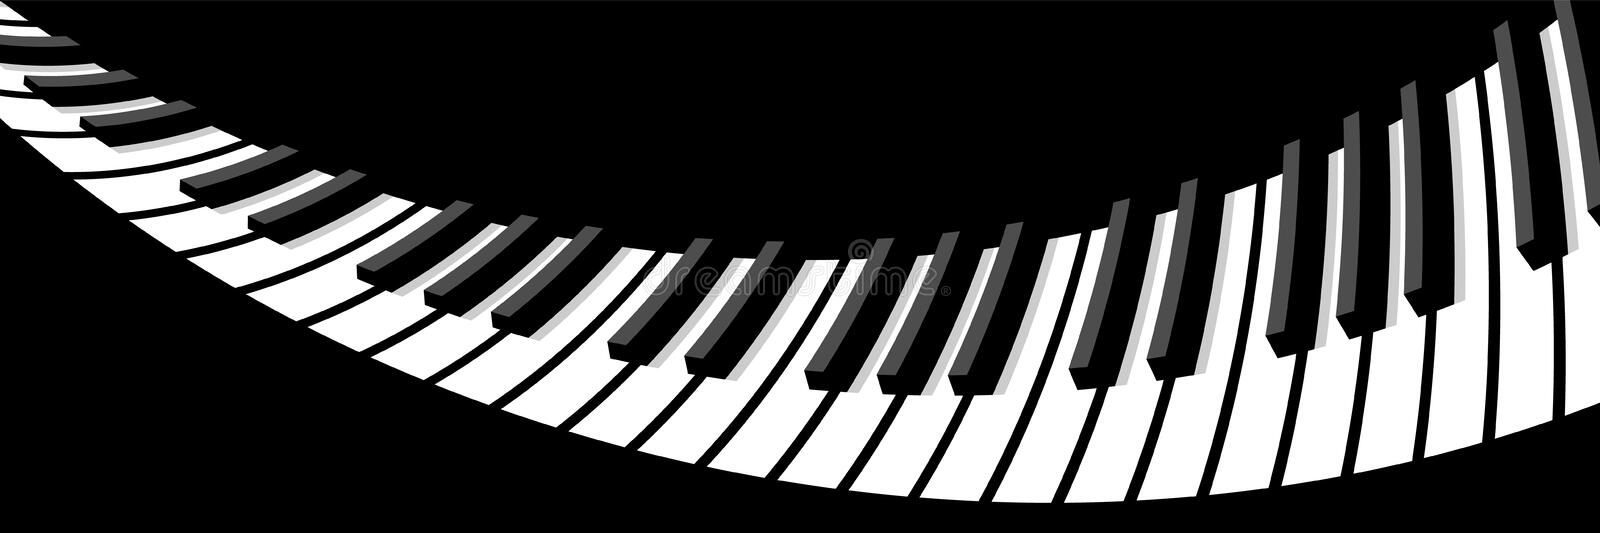 Distorted piano keyboard. Black and white piano keyboard. For background, wide screensavers for your fantastic flight stock illustration